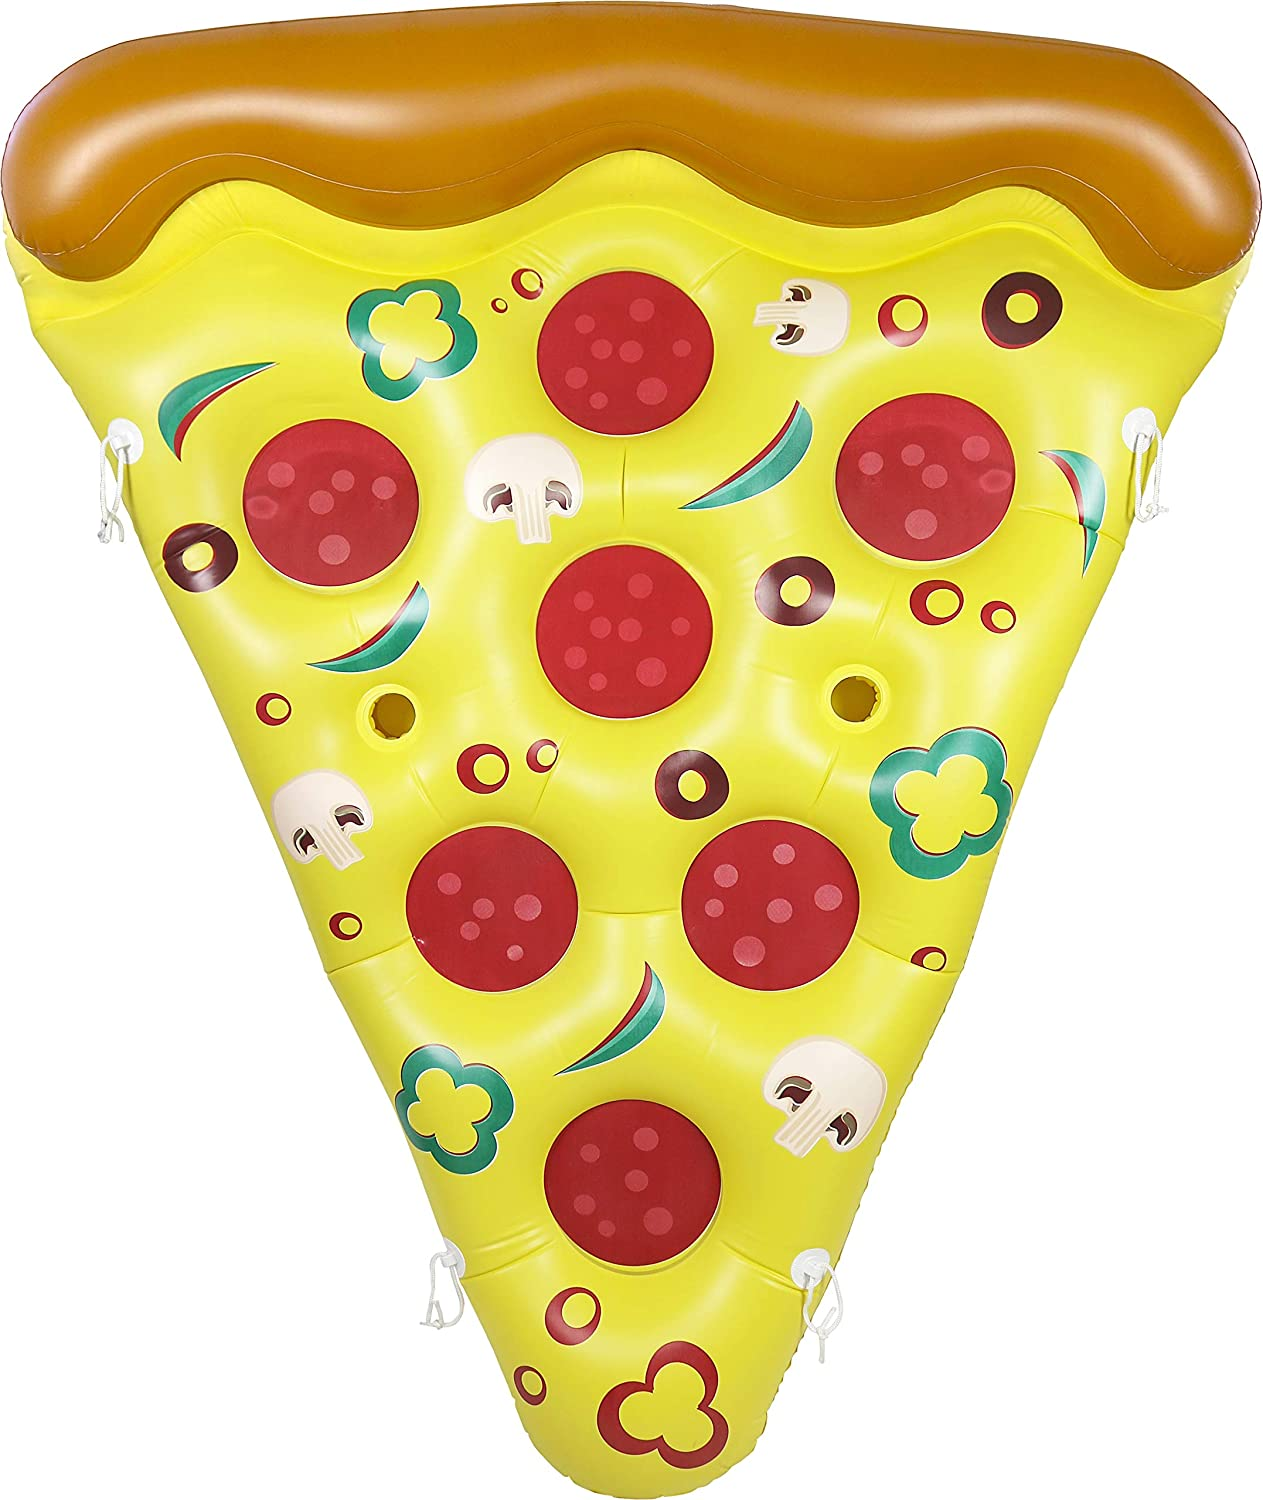 Greenco Giant Inflatable Pizza Pool Float Single, 75 x 61 Inches